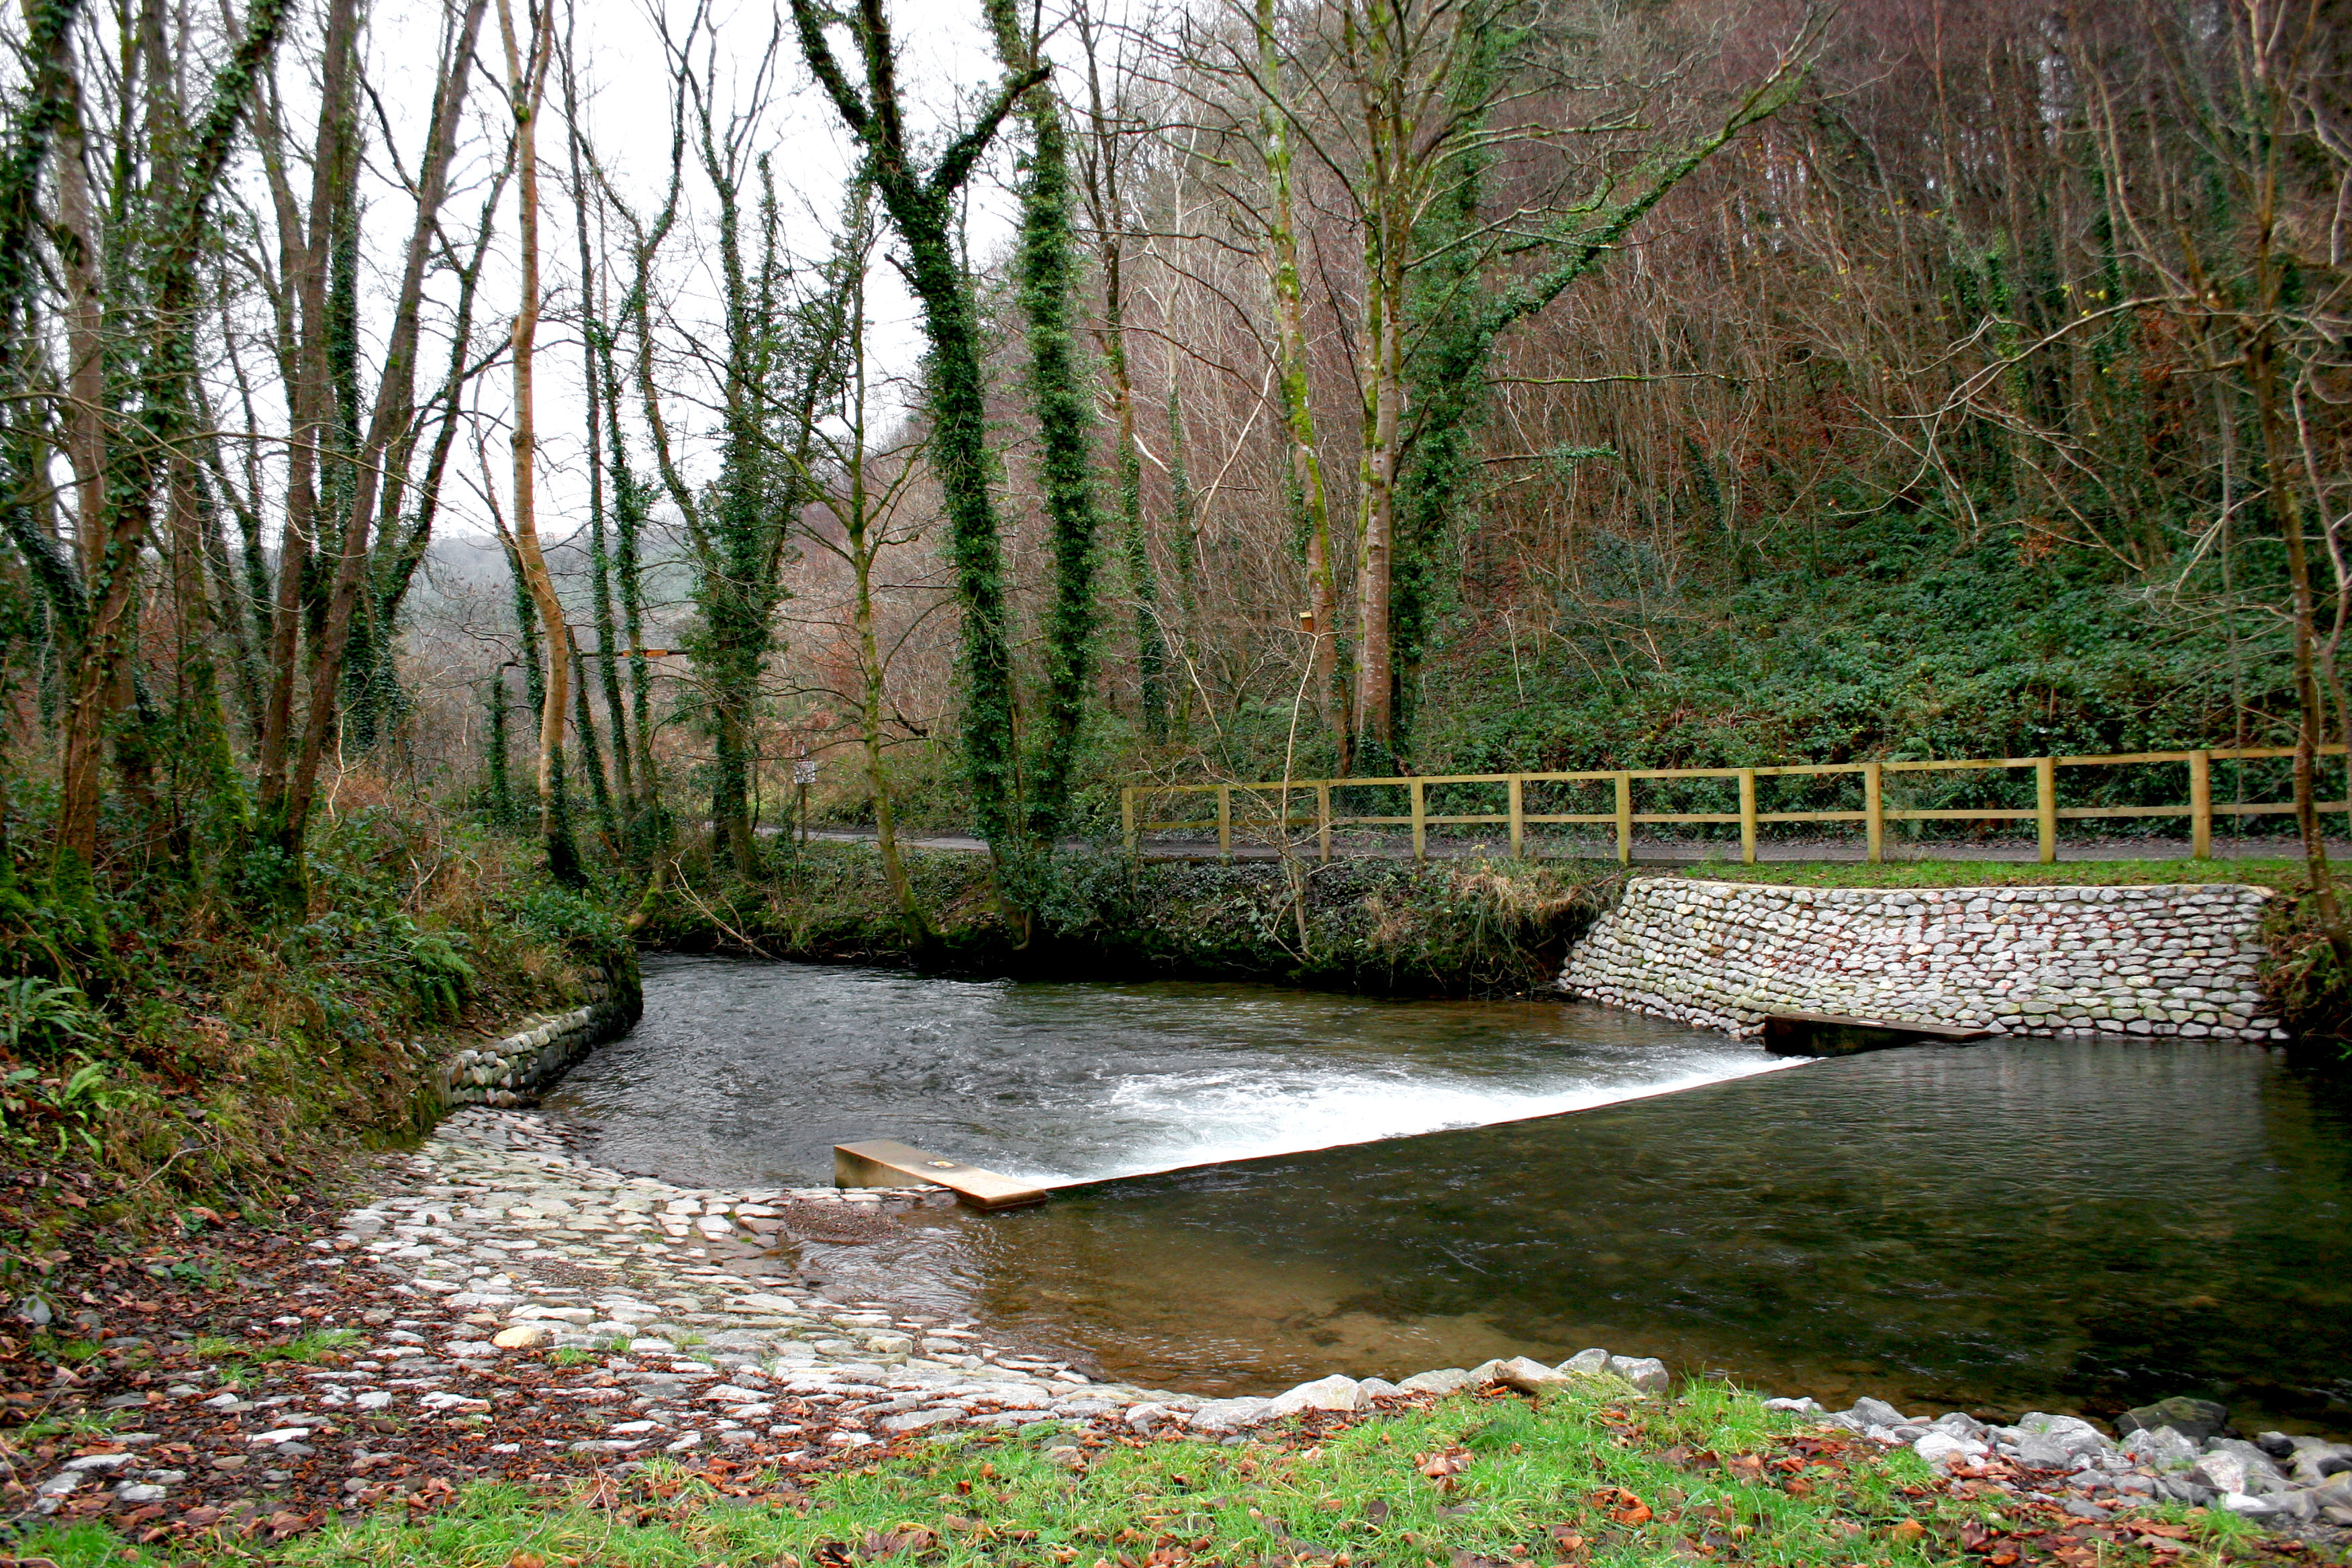 Collard Bridge weir